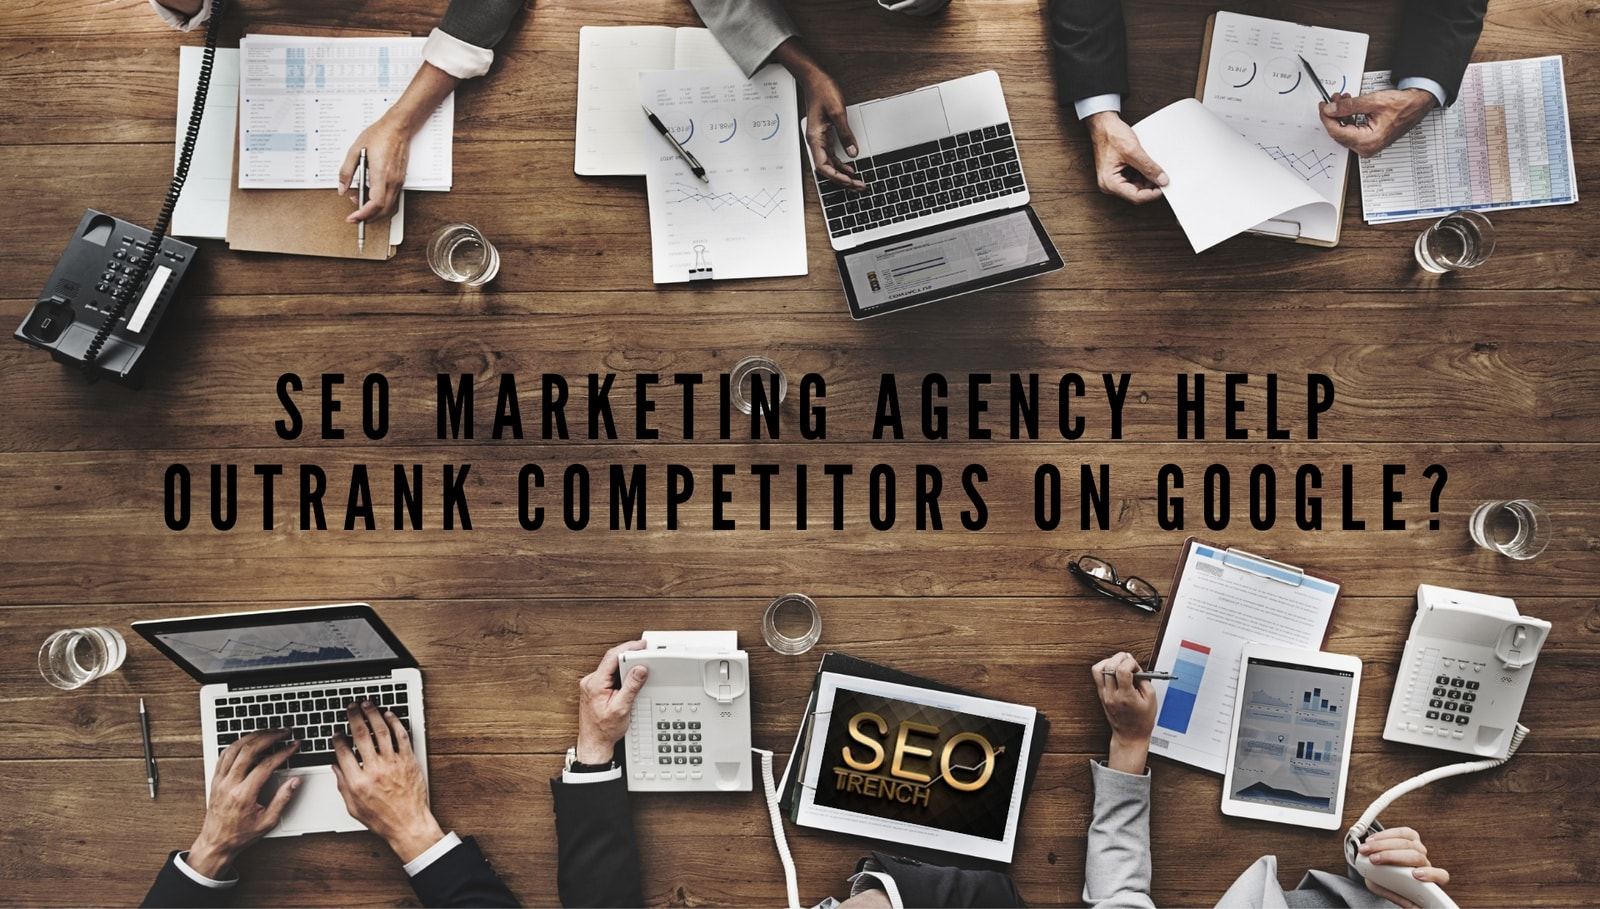 SEO marketing agency help outrank competitors on Google